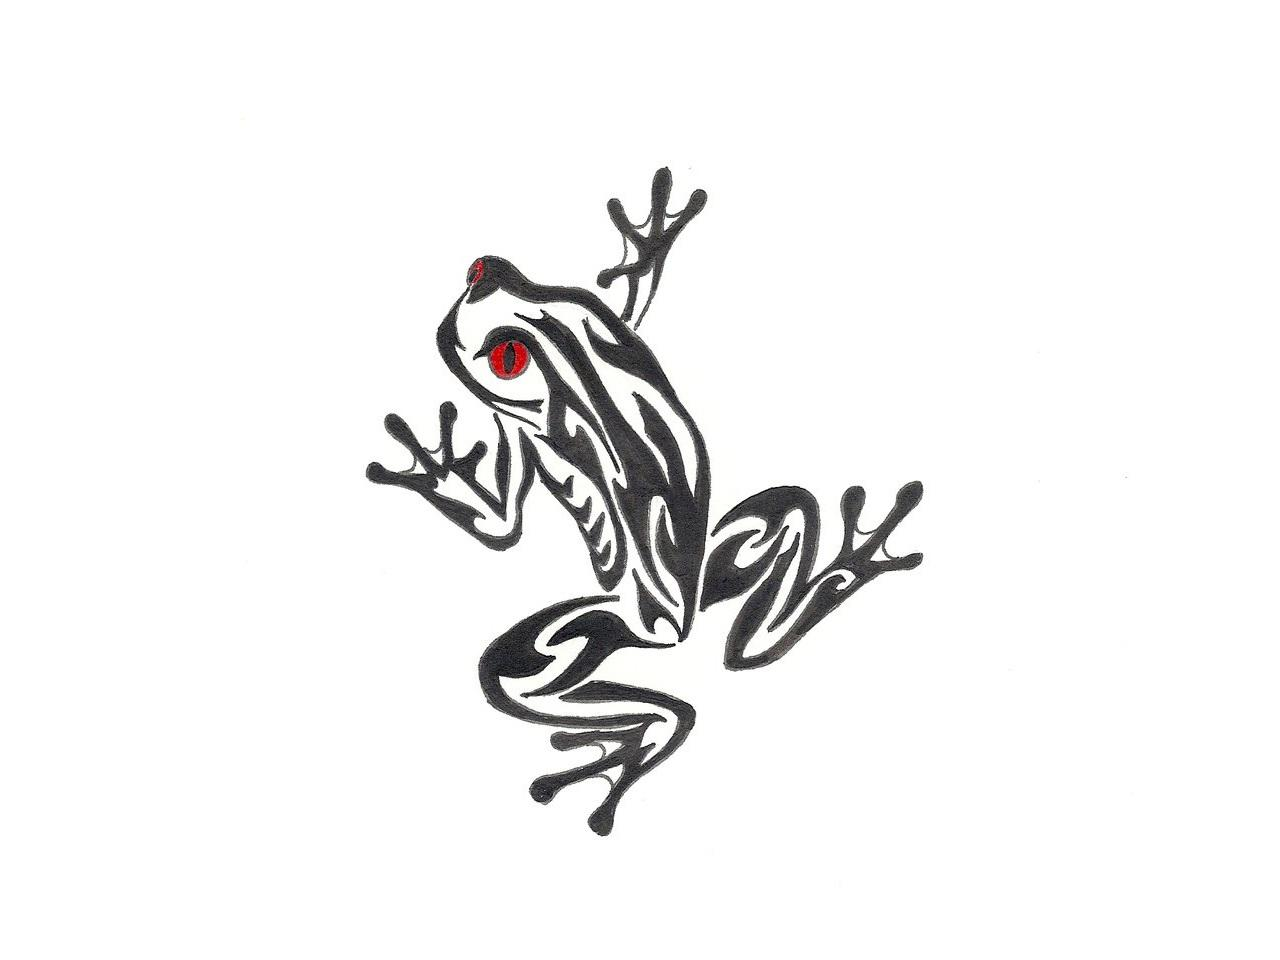 Frog Tattoos Designs, Ideas and Meaning | Tattoos For You